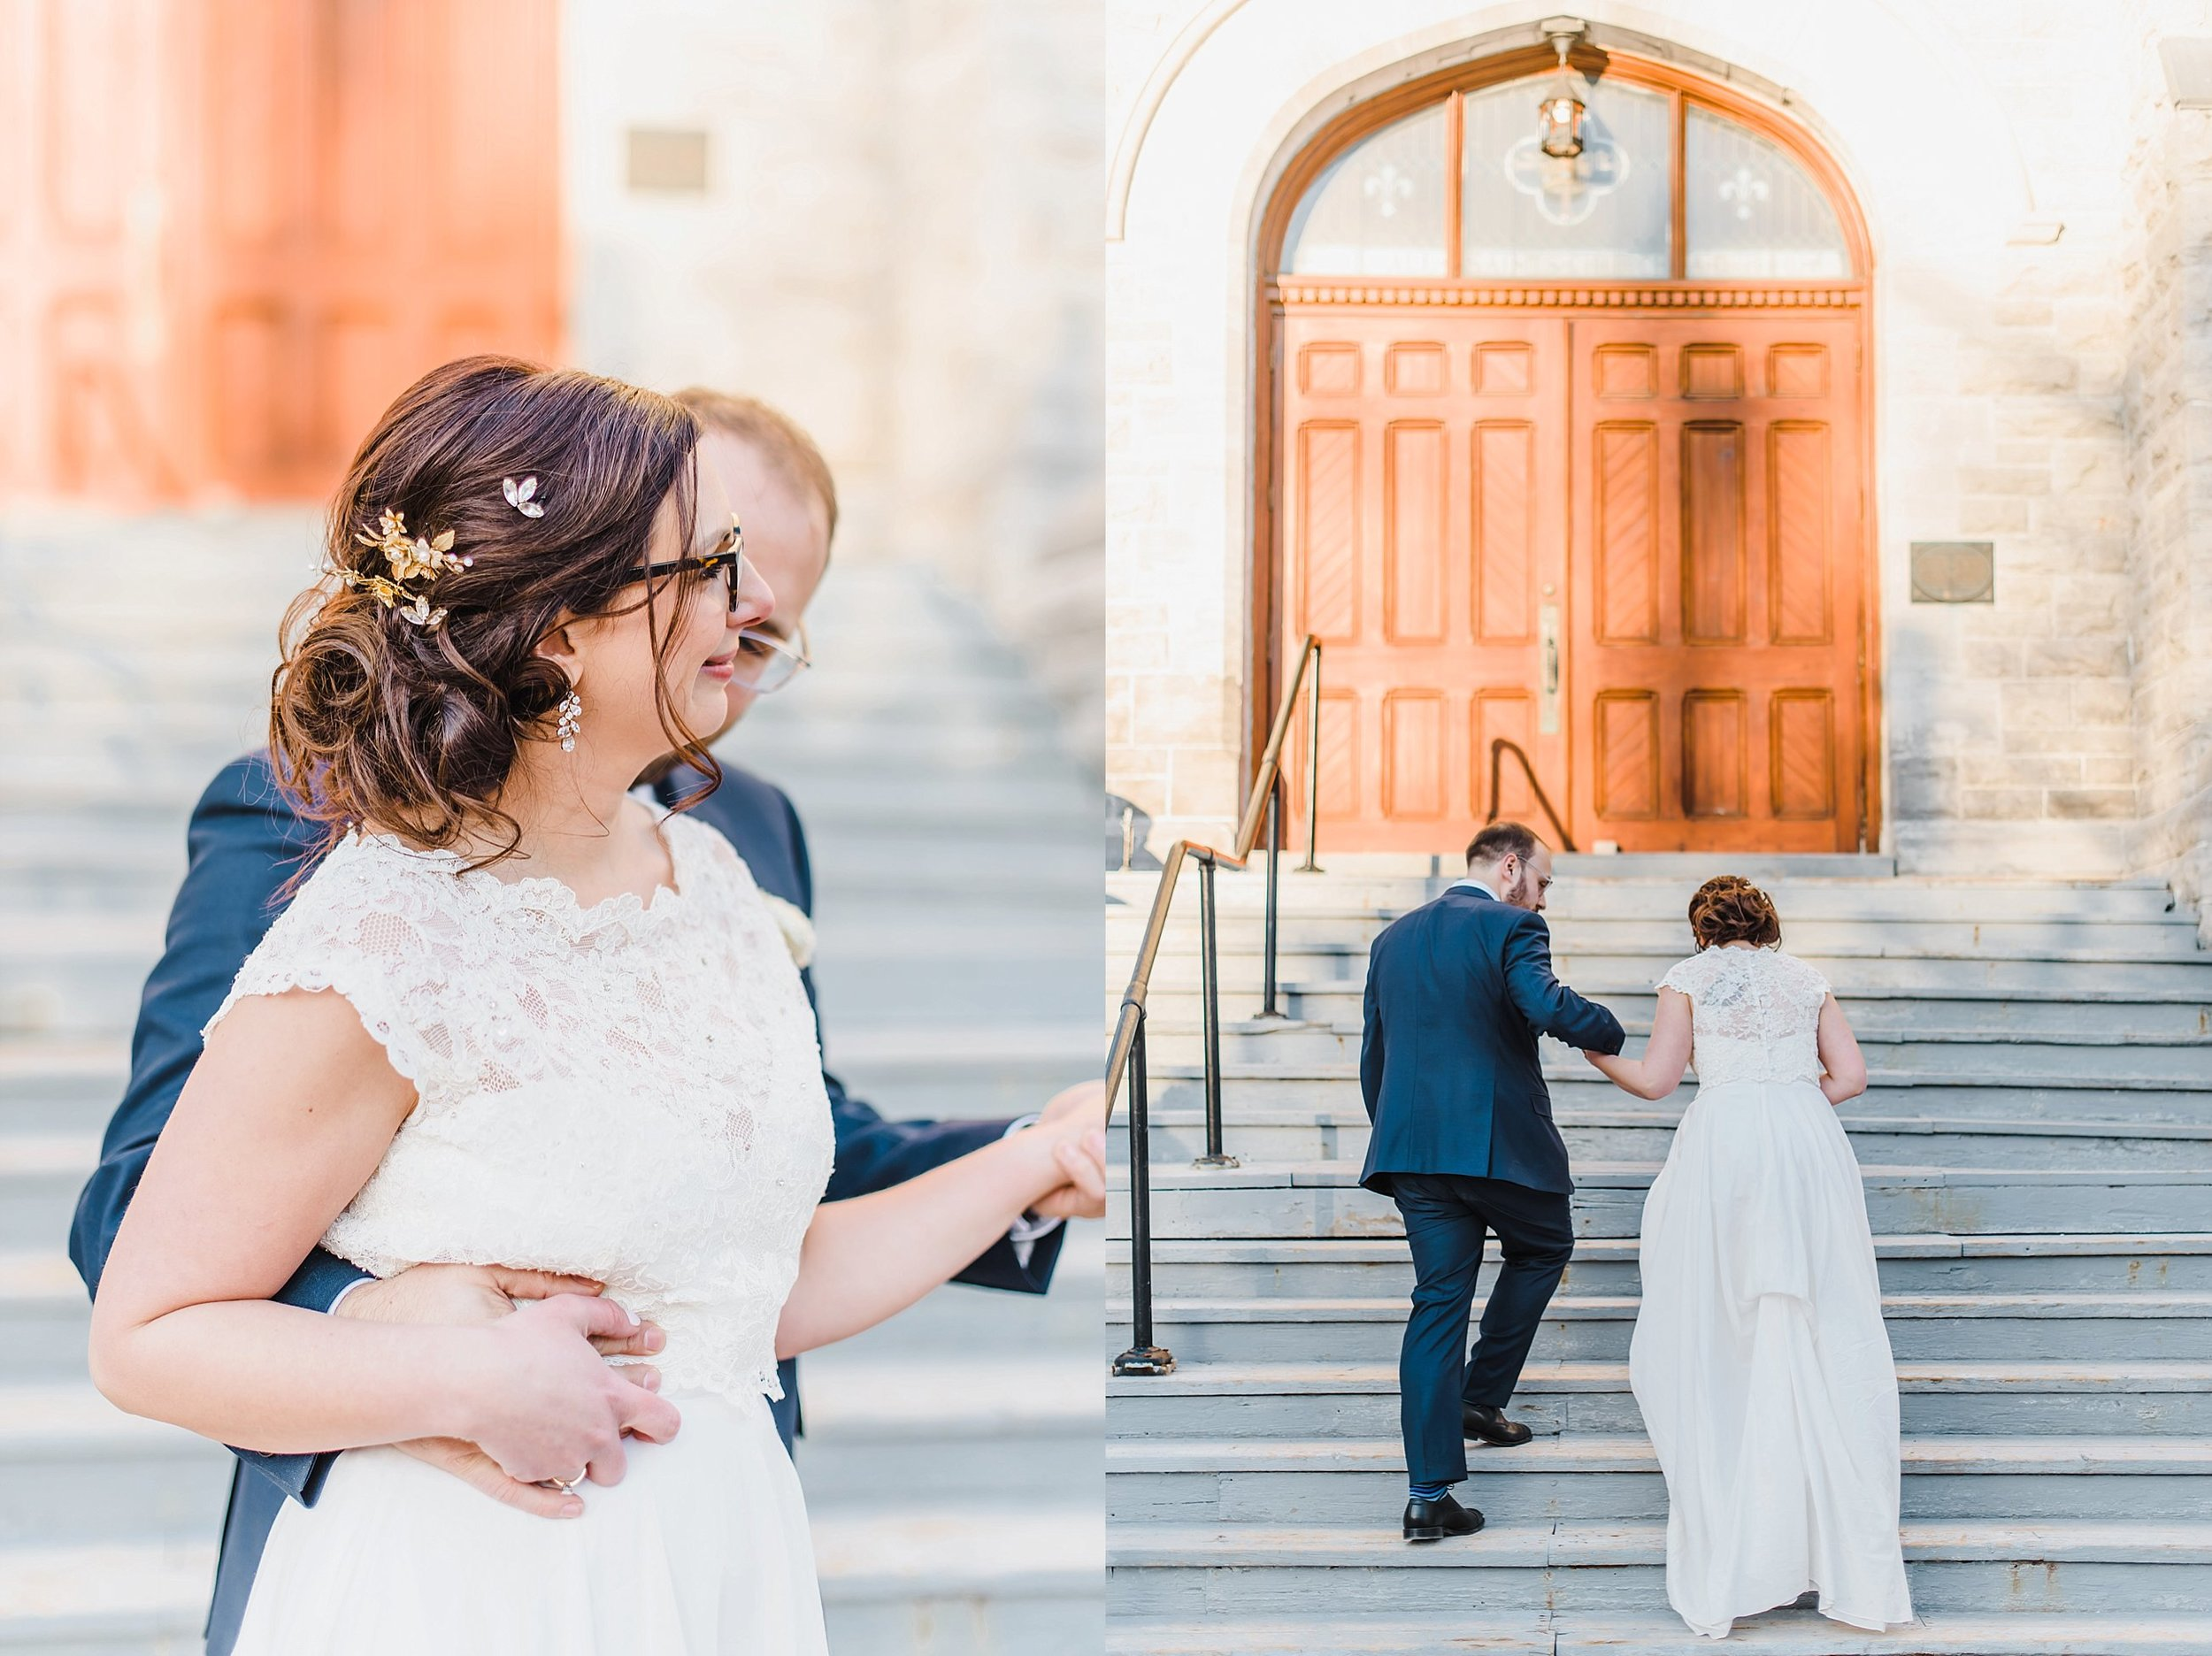 light airy indie fine art ottawa wedding photographer | Ali and Batoul Photography_0067.jpg